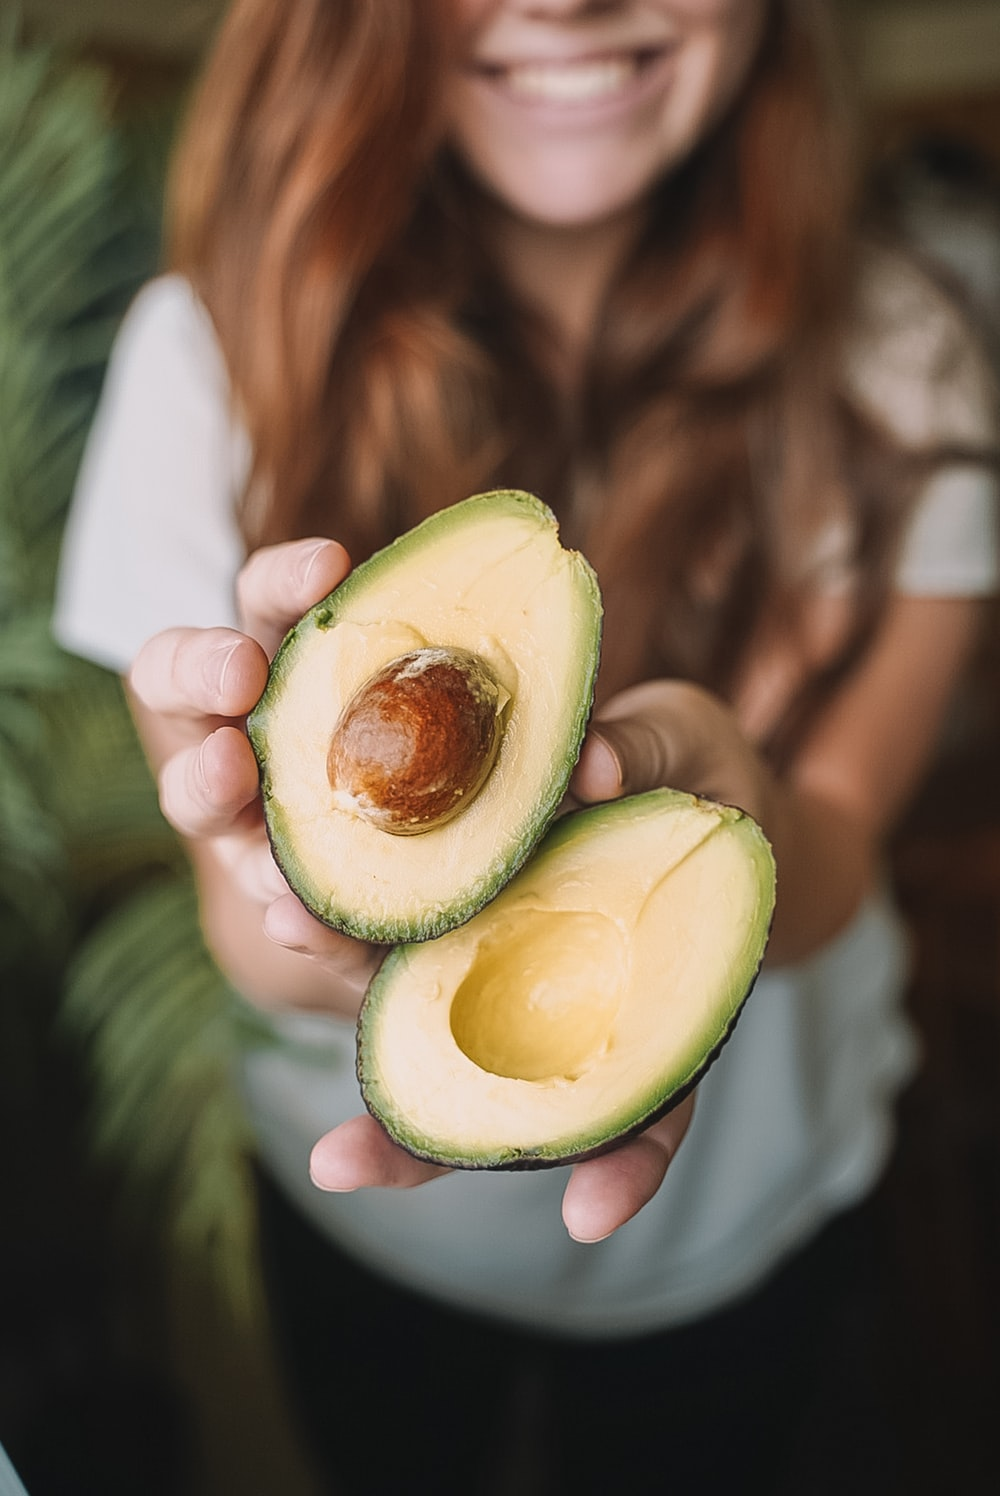 sliced avocado fruit on persons hand